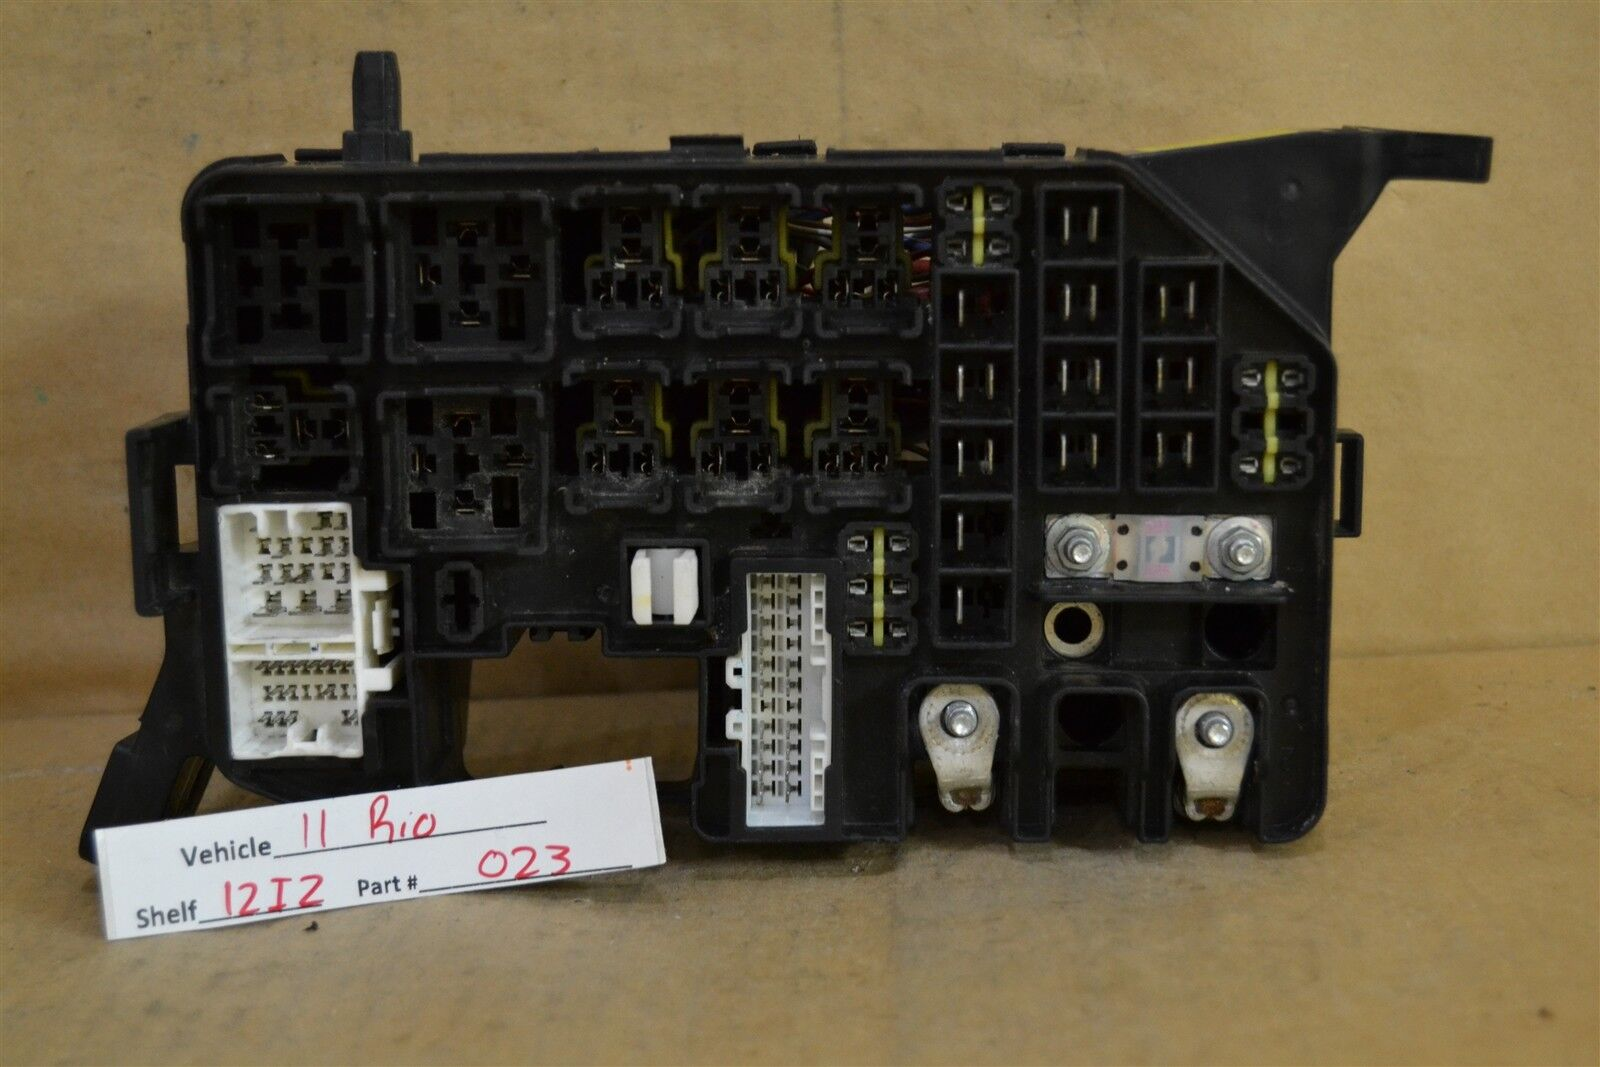 Used Kia Computers Chips Cruise Control And Related Parts For Sale Fuse Box 2011 Forte 2008 Rio Relay Unit 919401e000 Module 2023 12i2